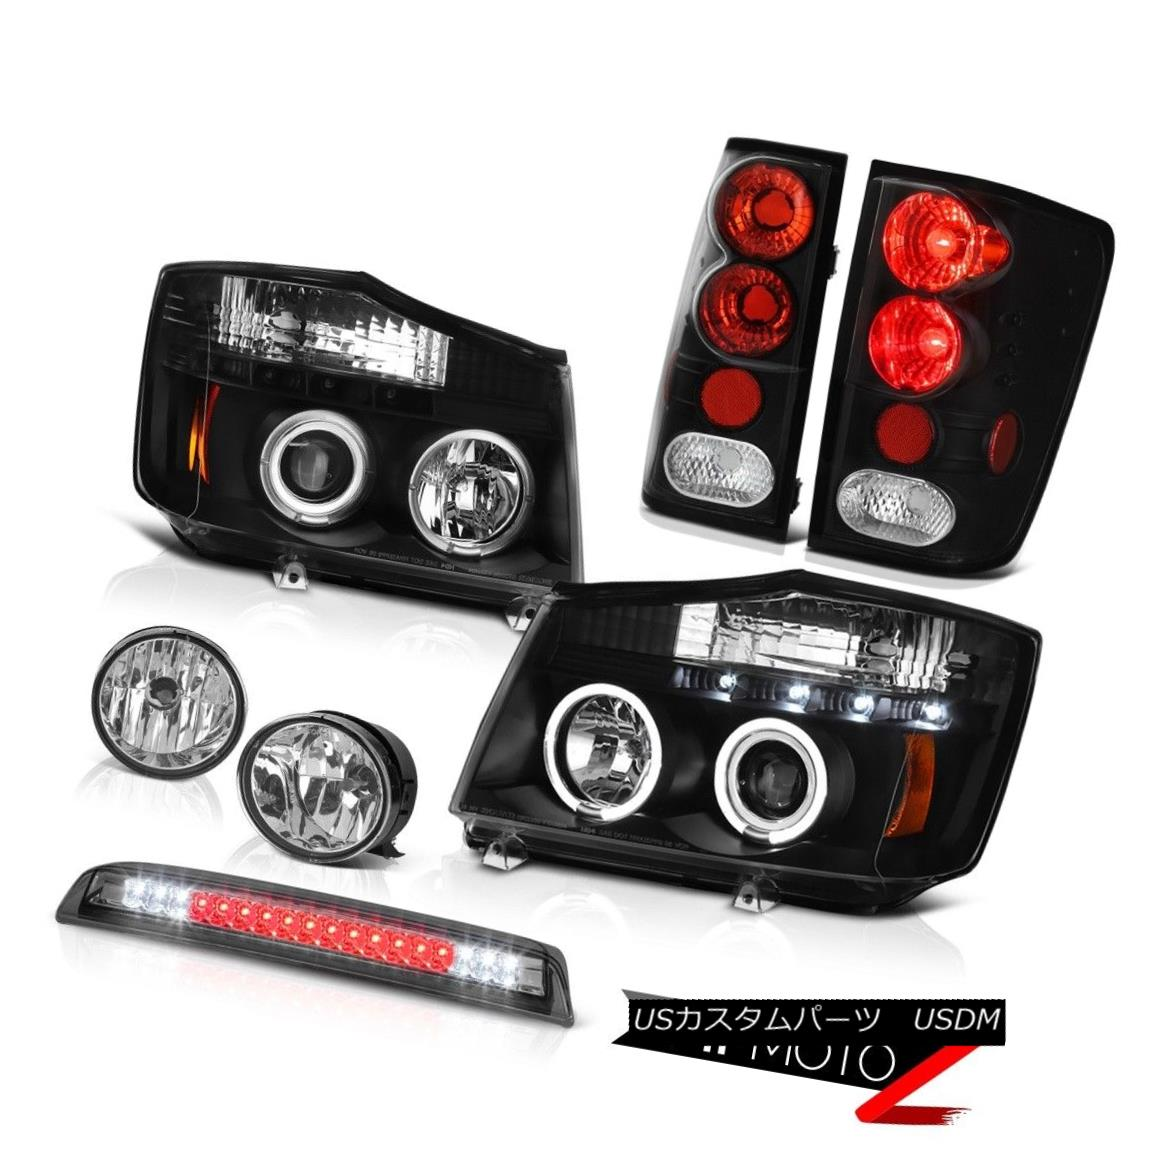 Fit 04-15 Titan Clear LED Halo Projector Headlights+LED Rear Tail+3rd Brake Lamp